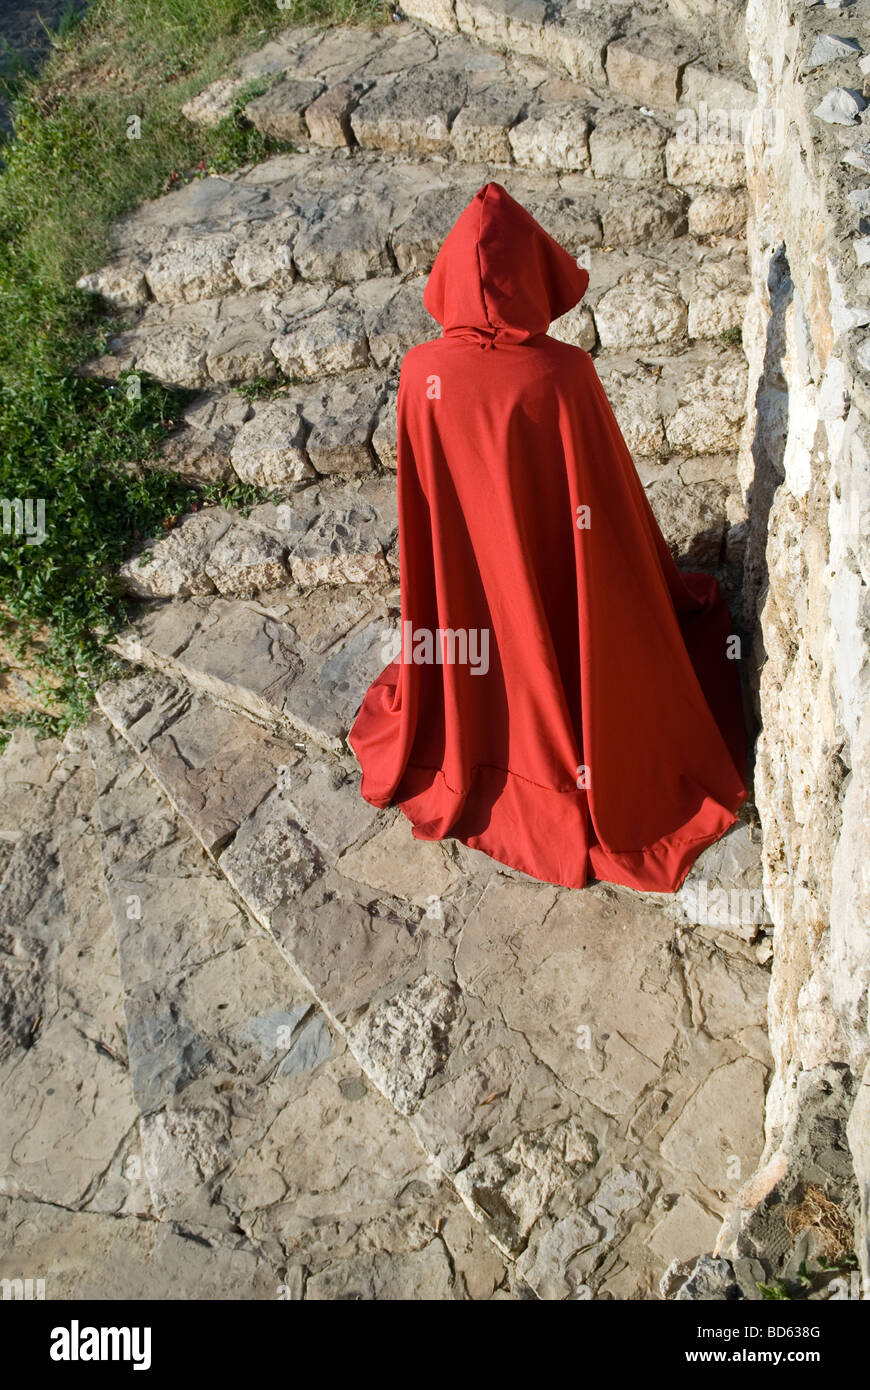 Mysterious figure in red cloak climbing down stone stairs Stock Photo